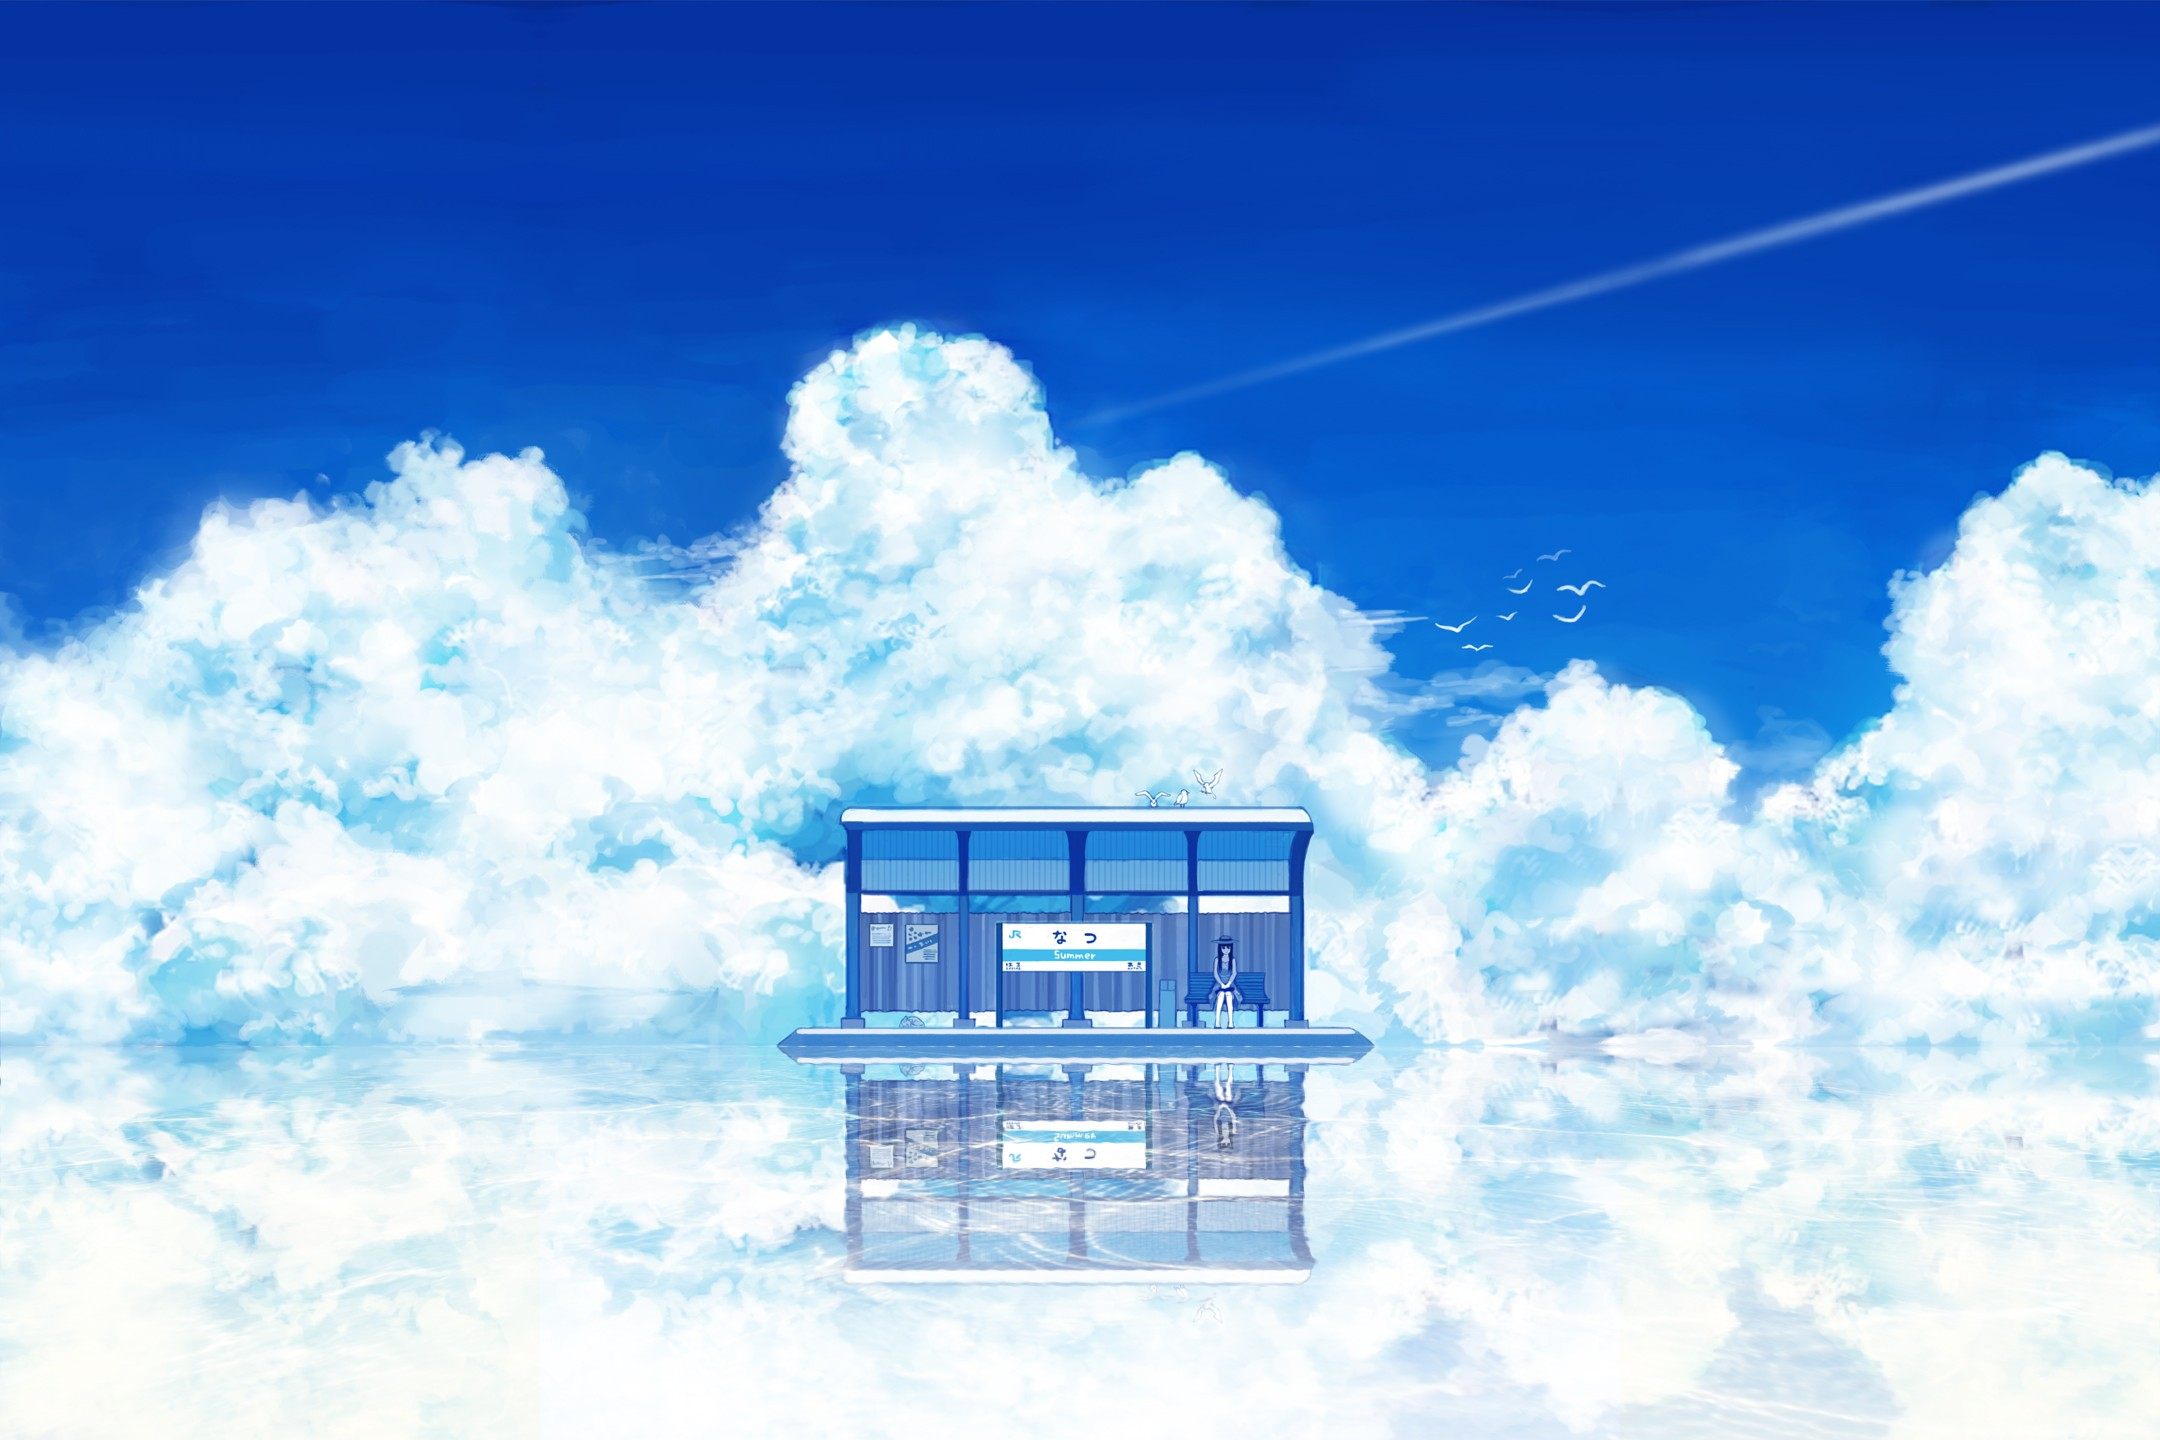 Anime Scenery Wallpaper Download Free Awesome Wallpapers For